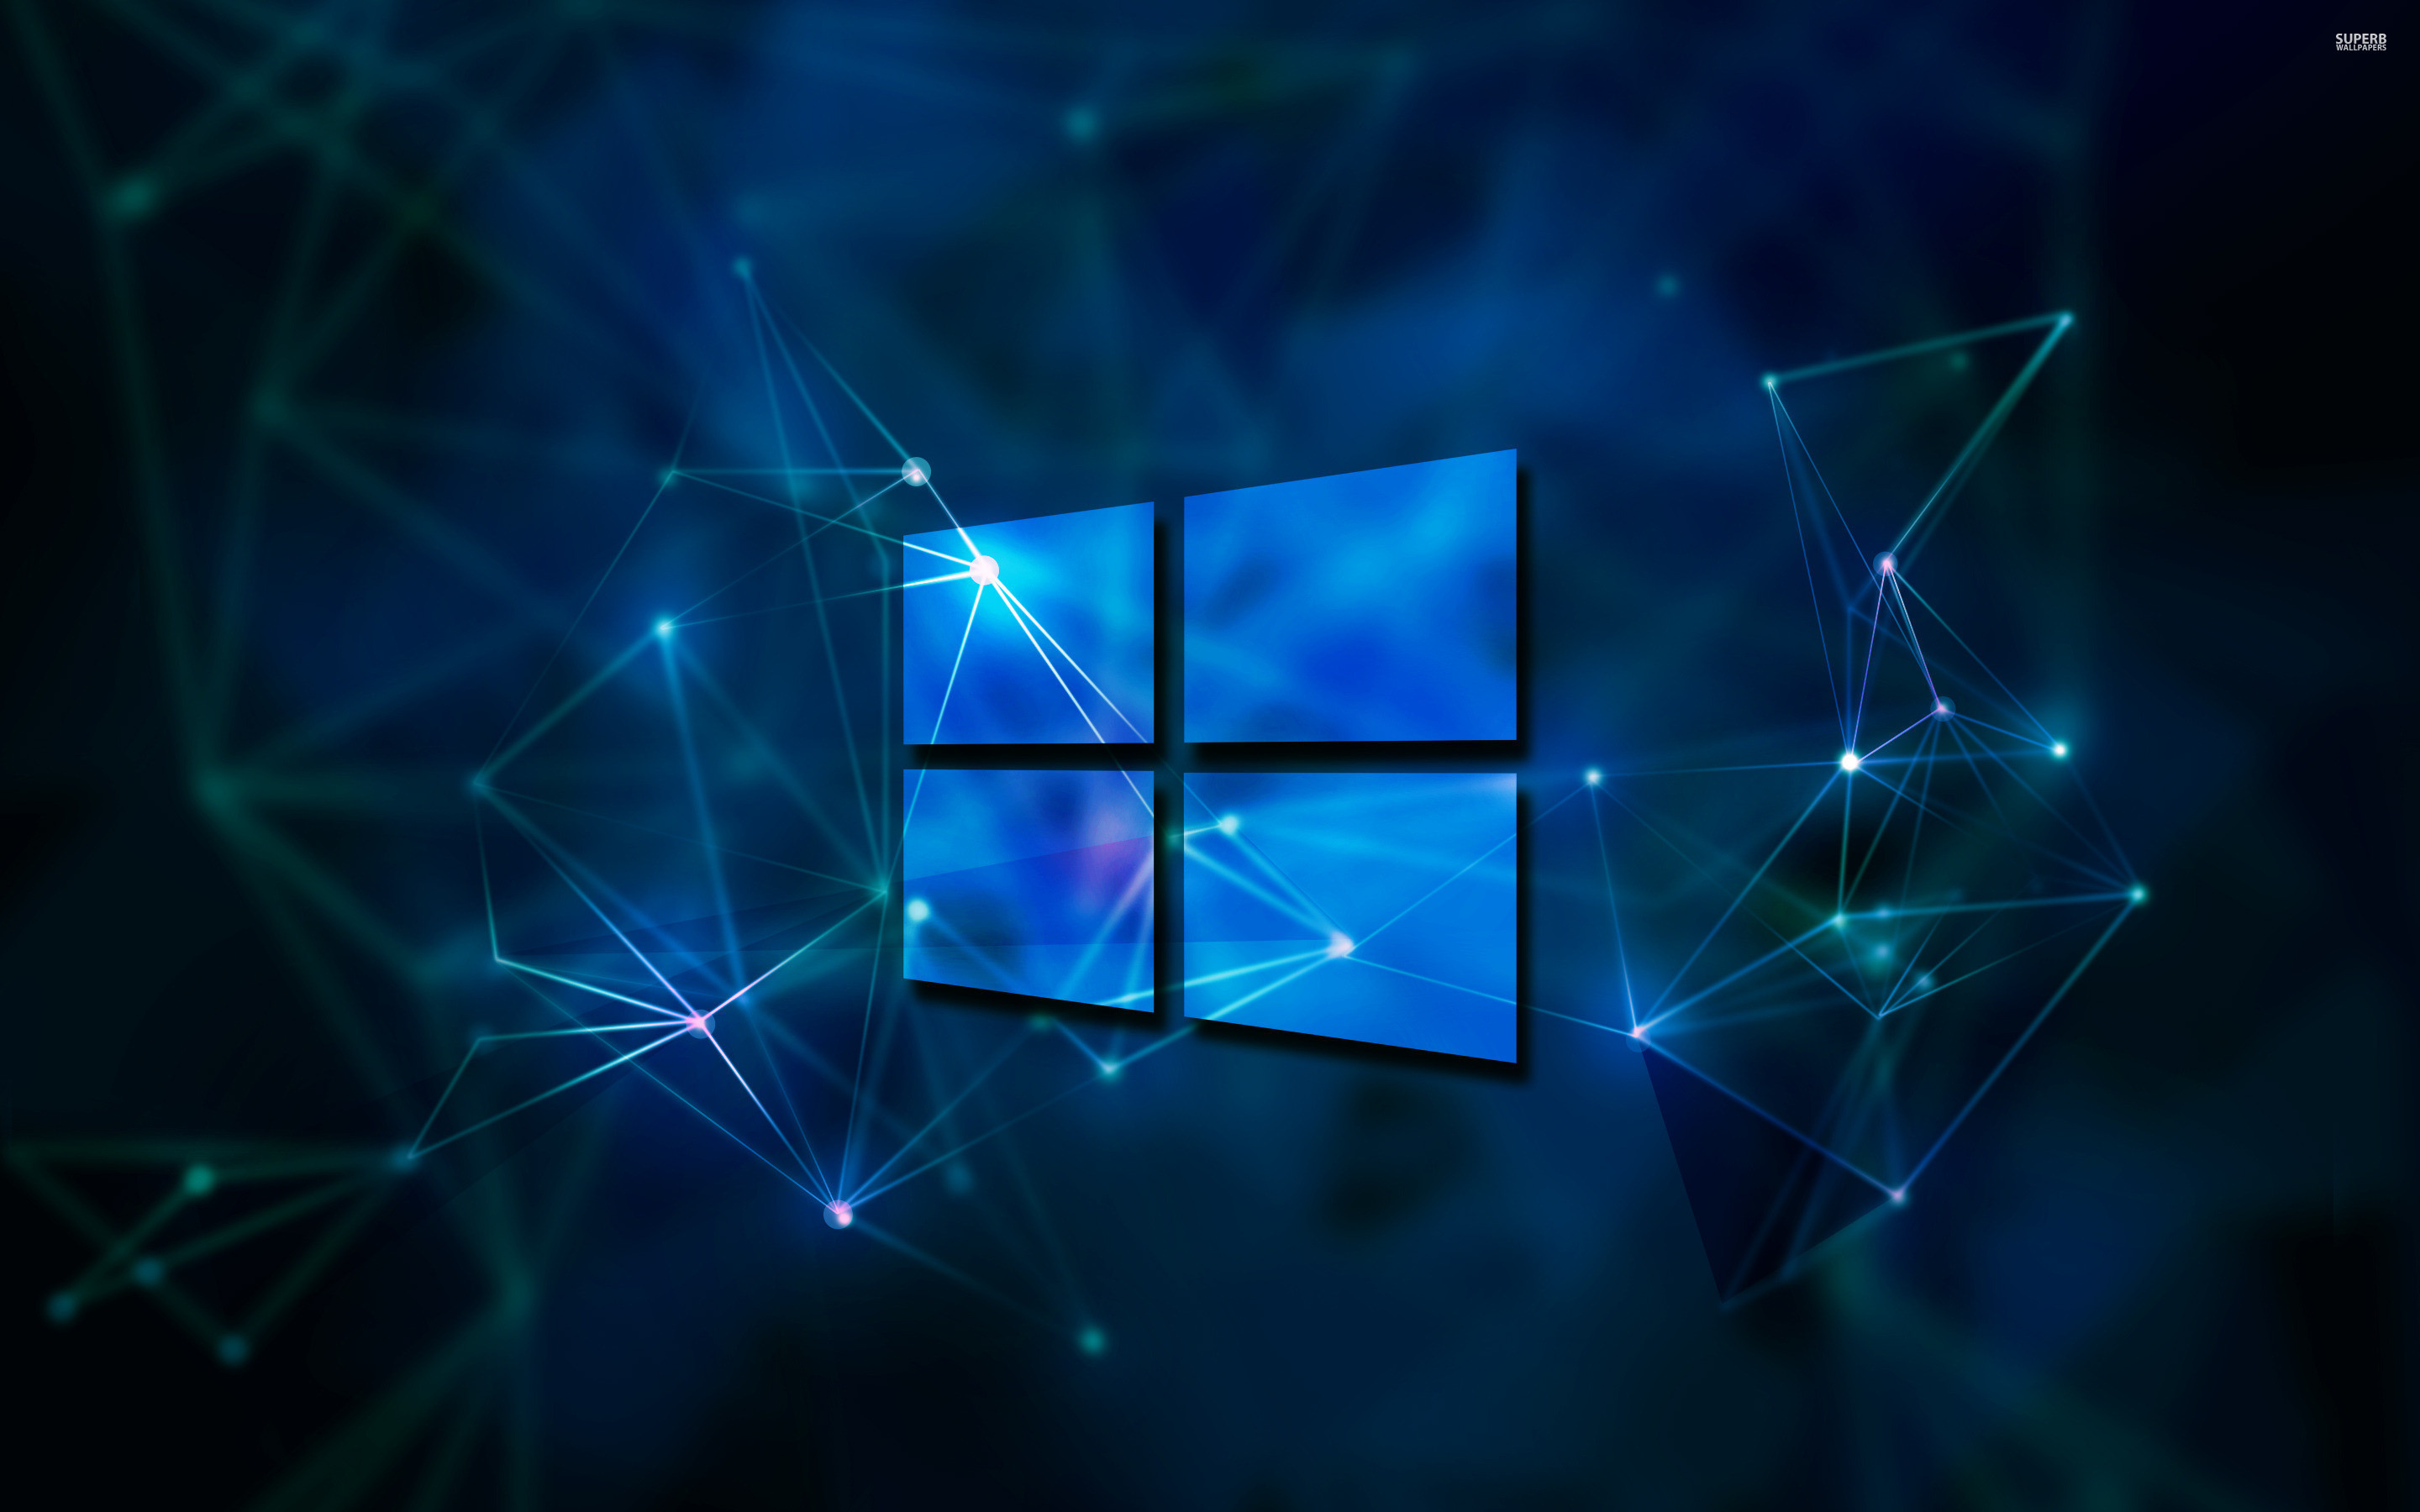 Hd Windows Backgrounds Posted By John Thompson